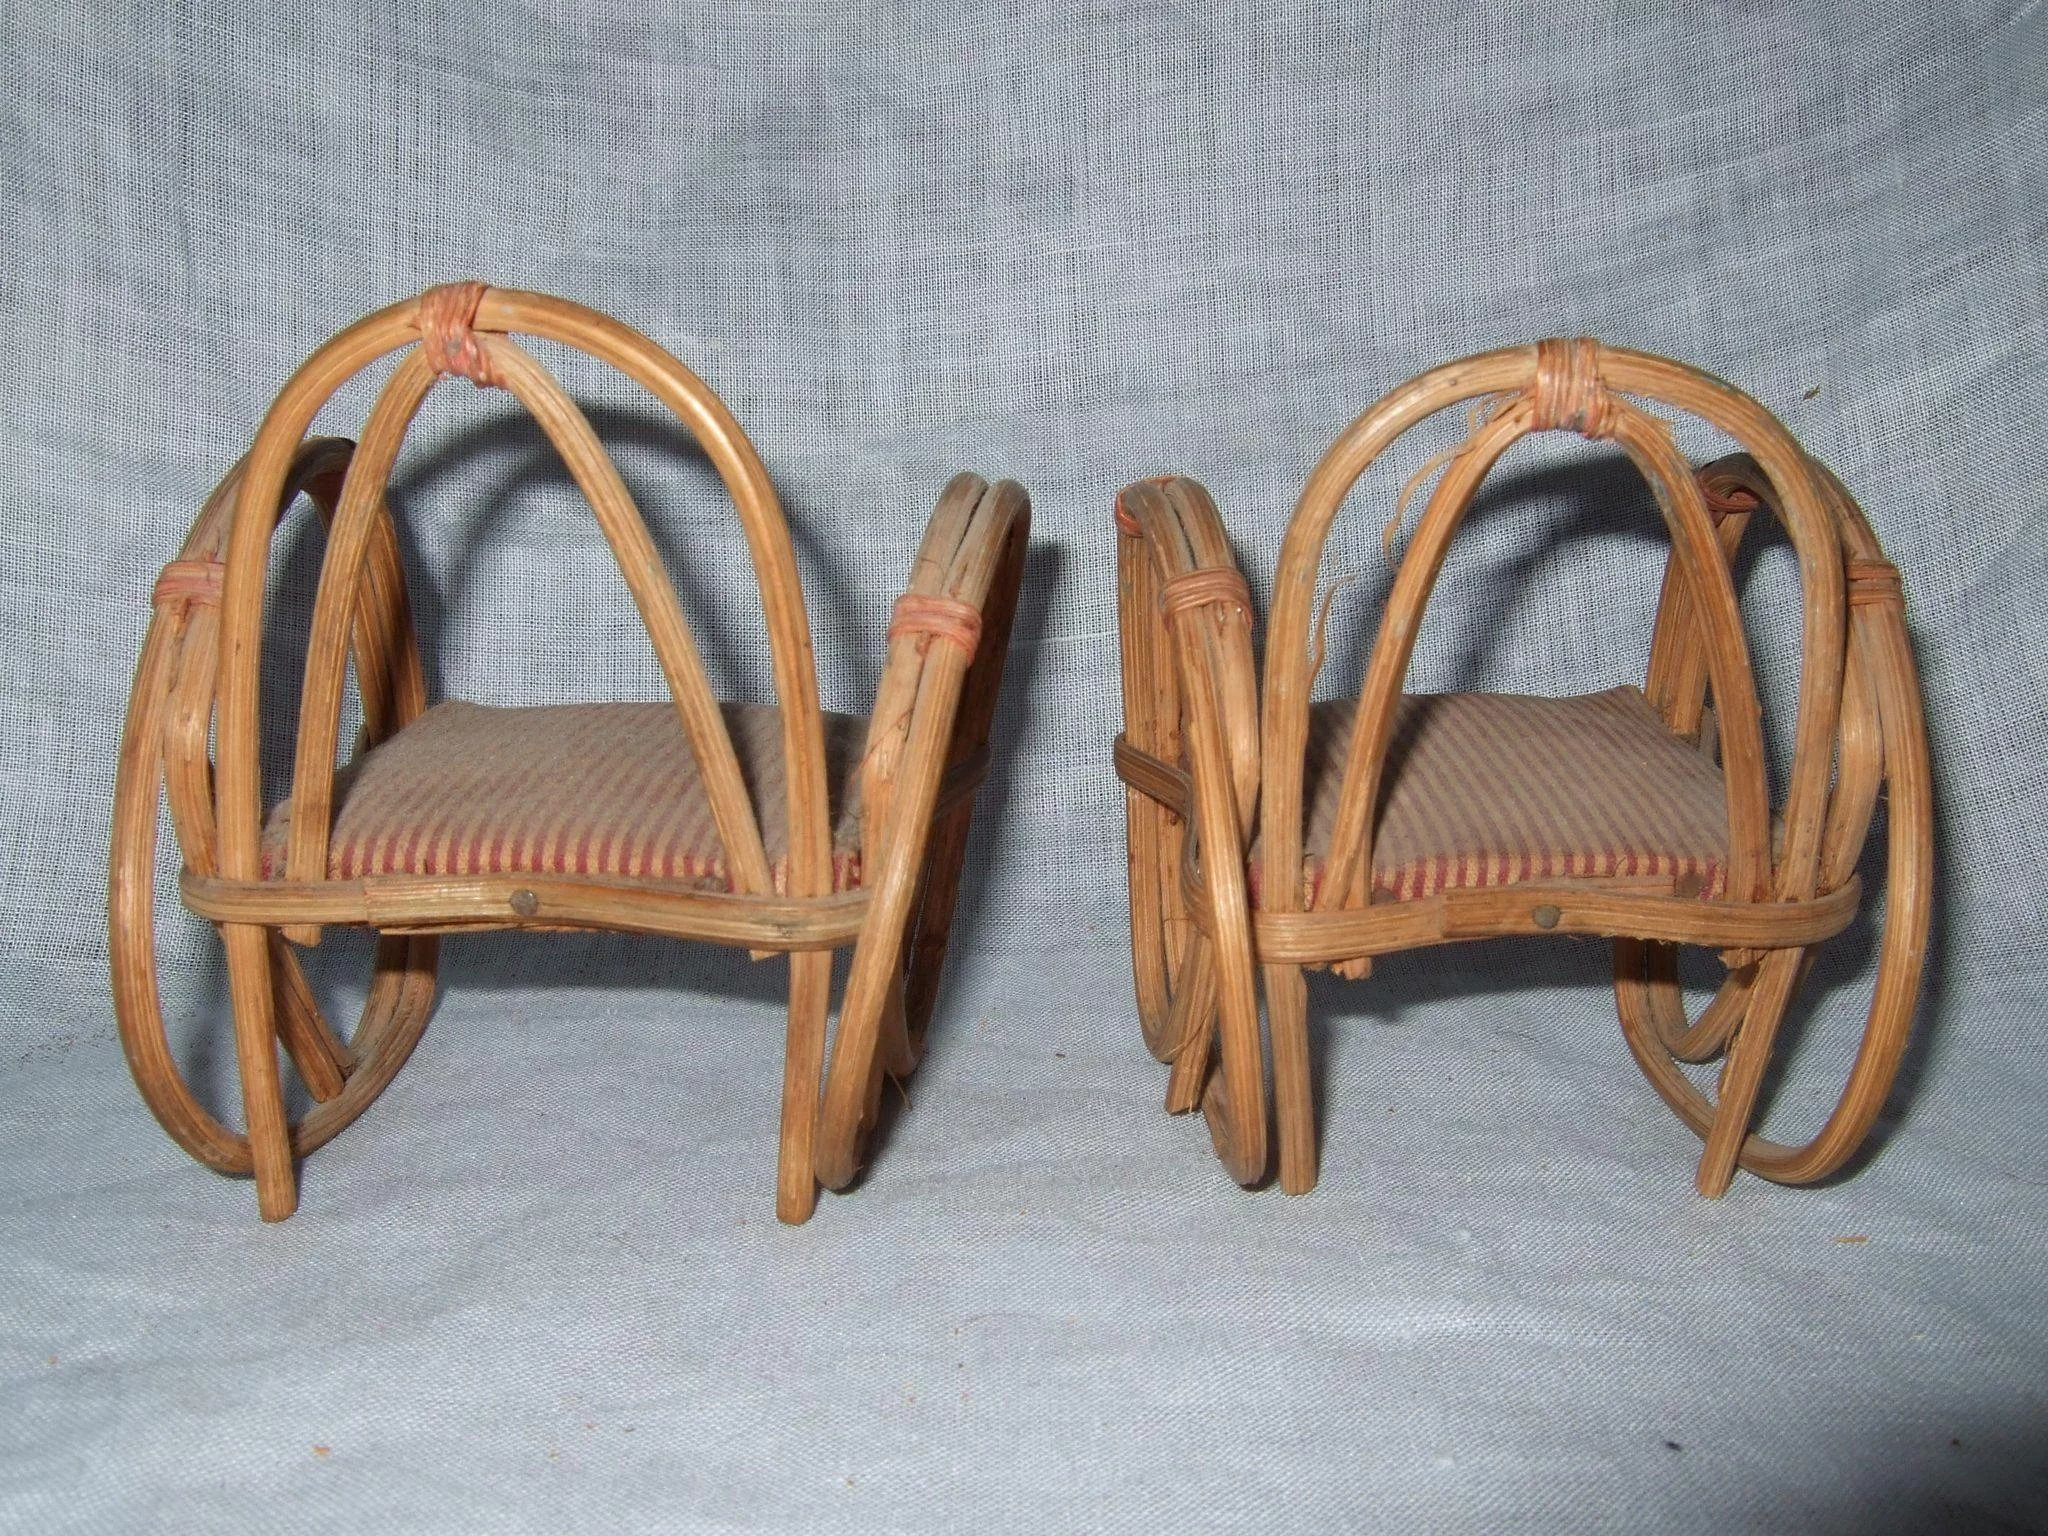 Pair Of Vintage Bent Bamboo Chair. Click To Expand